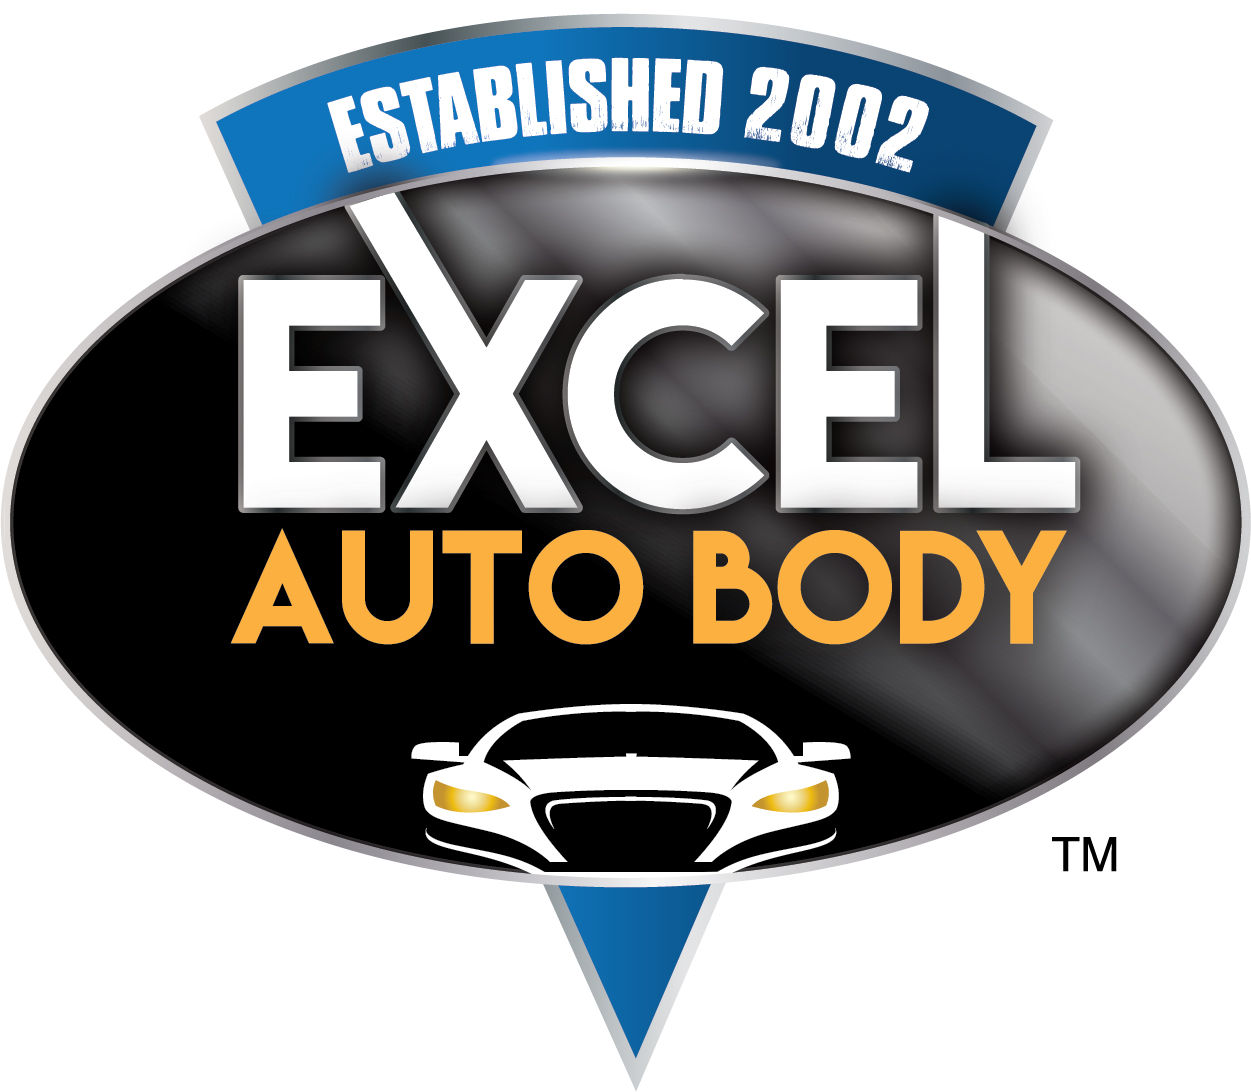 Excel AUto Body Color.jpg